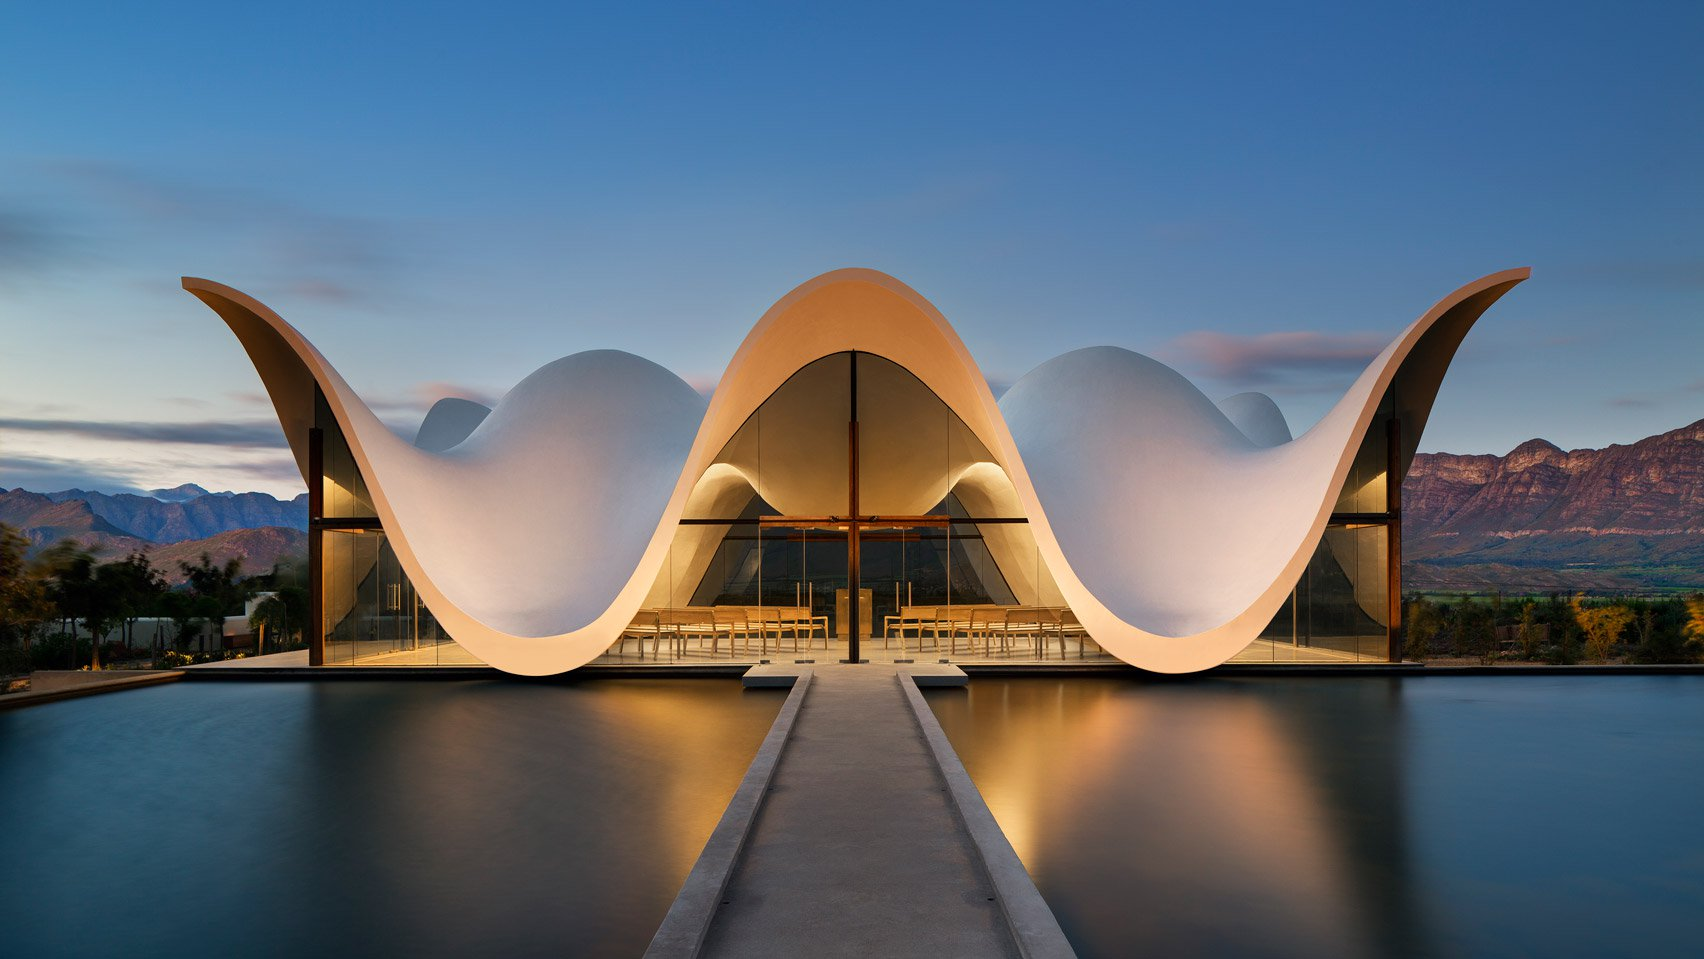 Bosjes Chapel in South Africa features a sculptural, undulating roof